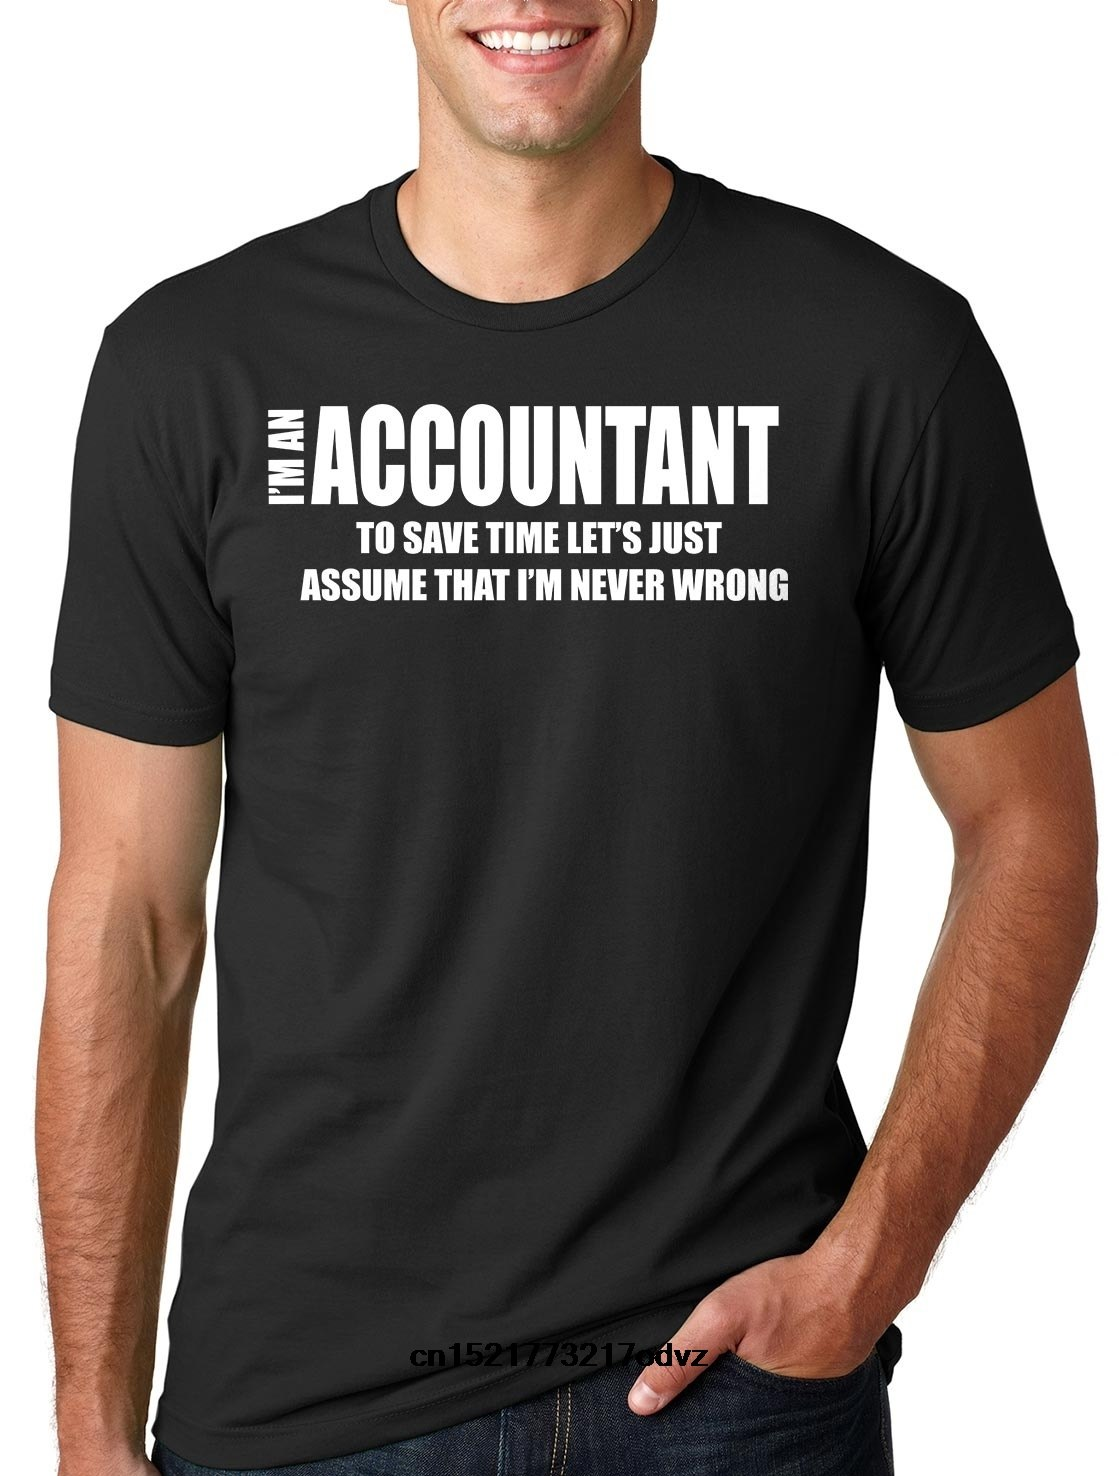 0e1a248733 Buy t shirt accountant and get free shipping on AliExpress.com